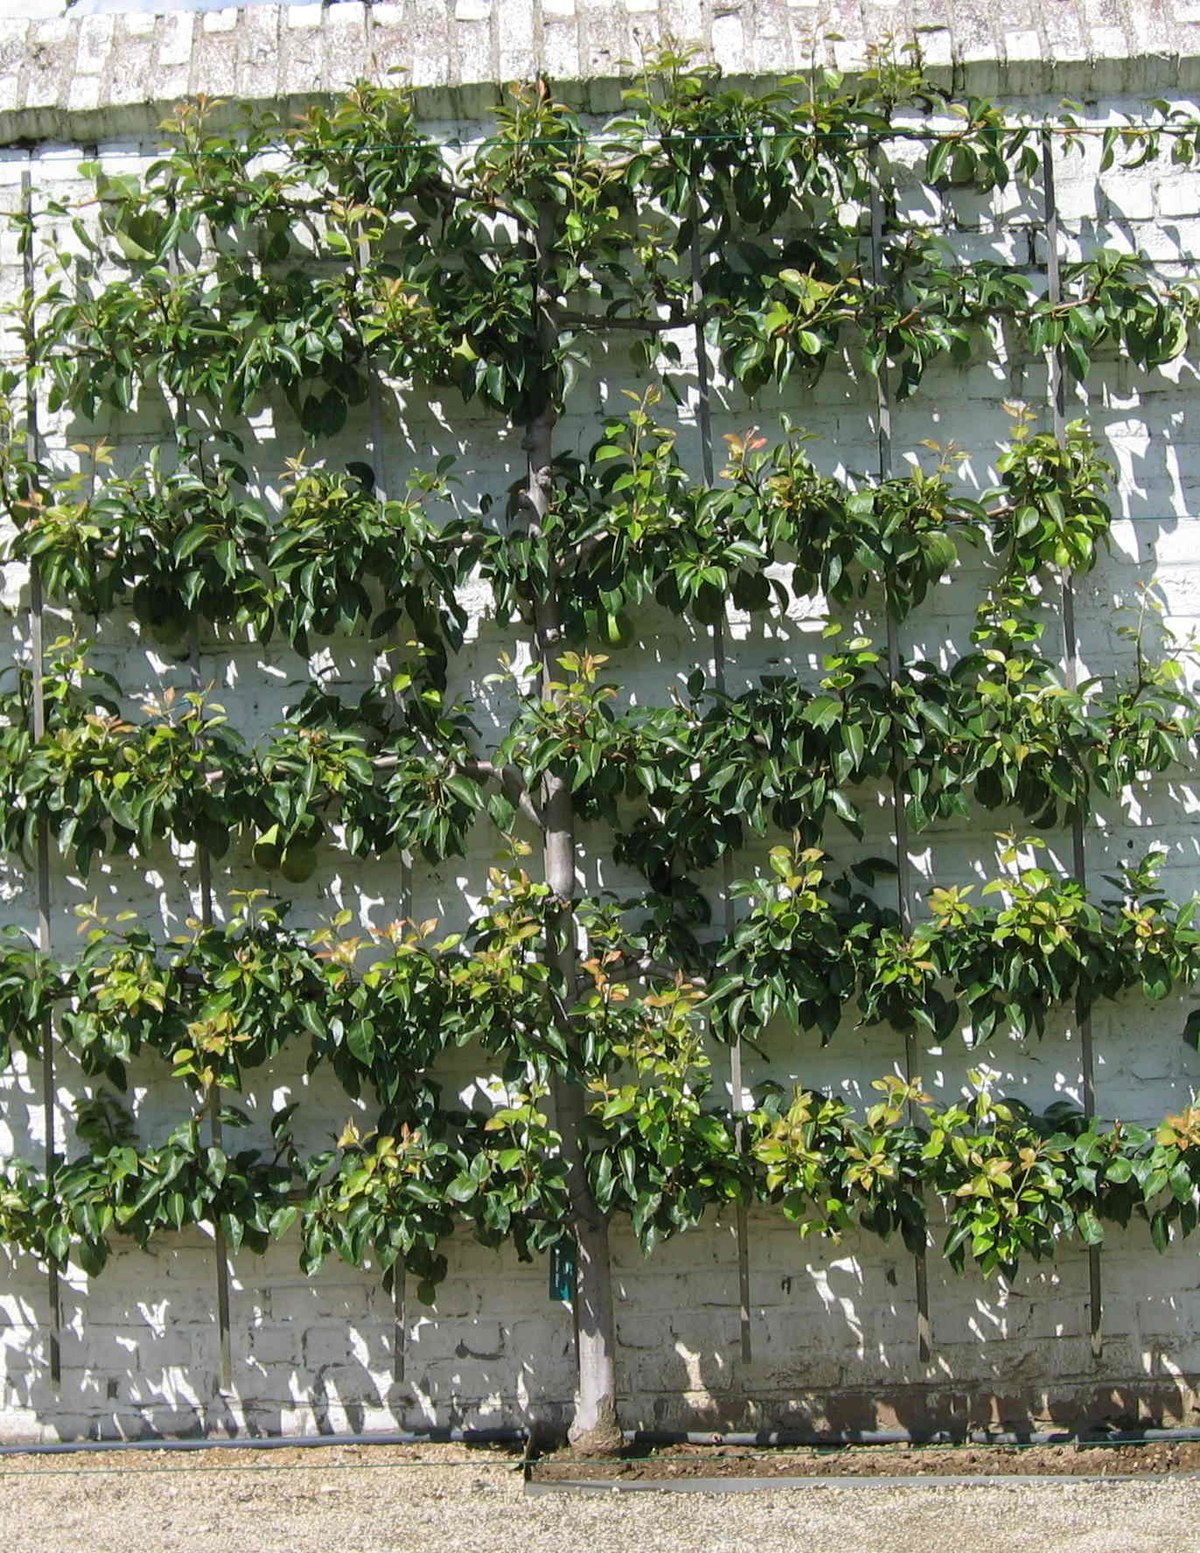 Espalier wikipedia - Growing french walnuts for a profit ...